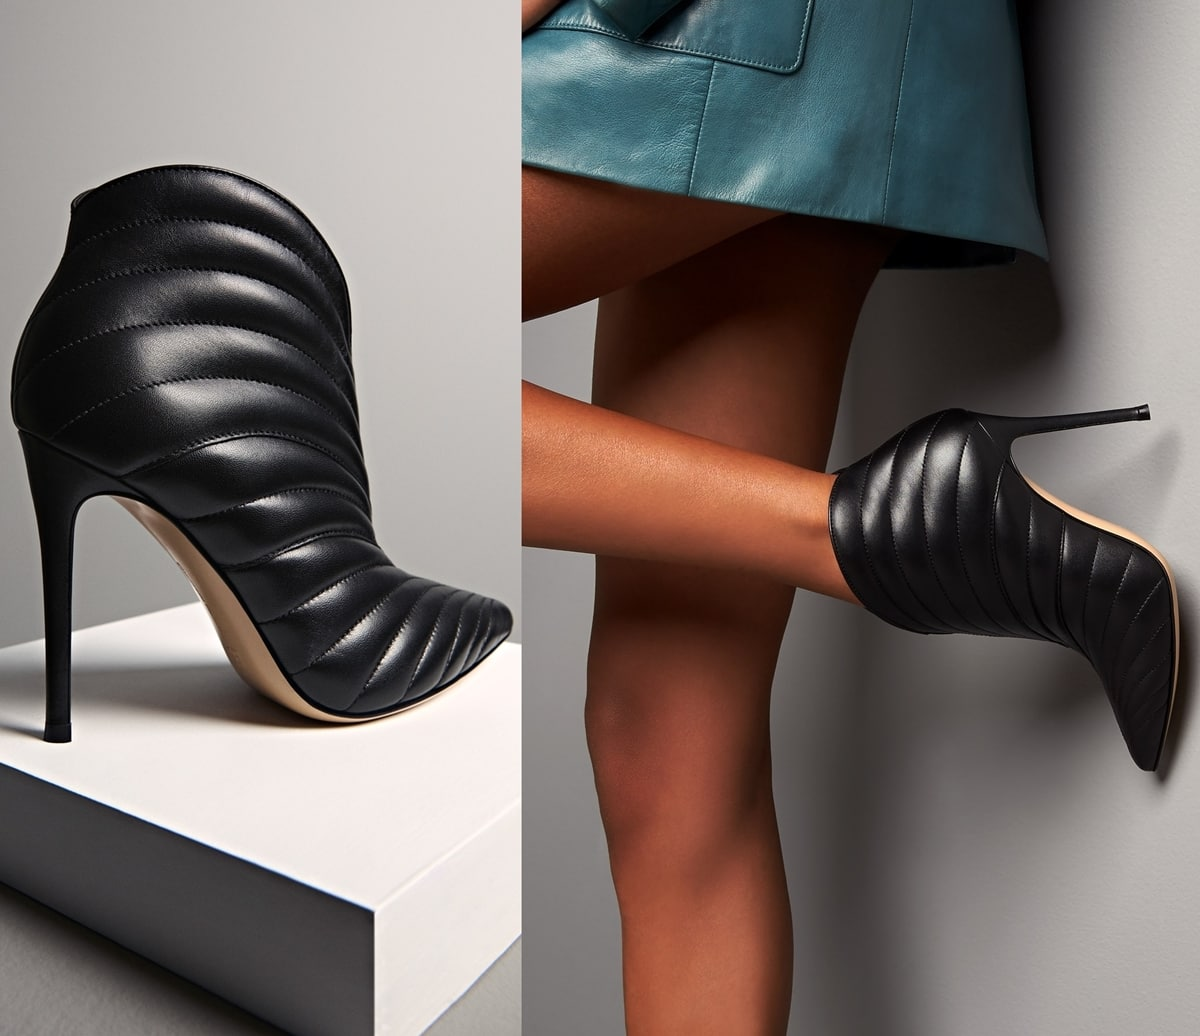 Gianvito Rossi's black leather Eiko heeled boots feature a sculpted design and sinuous quilting